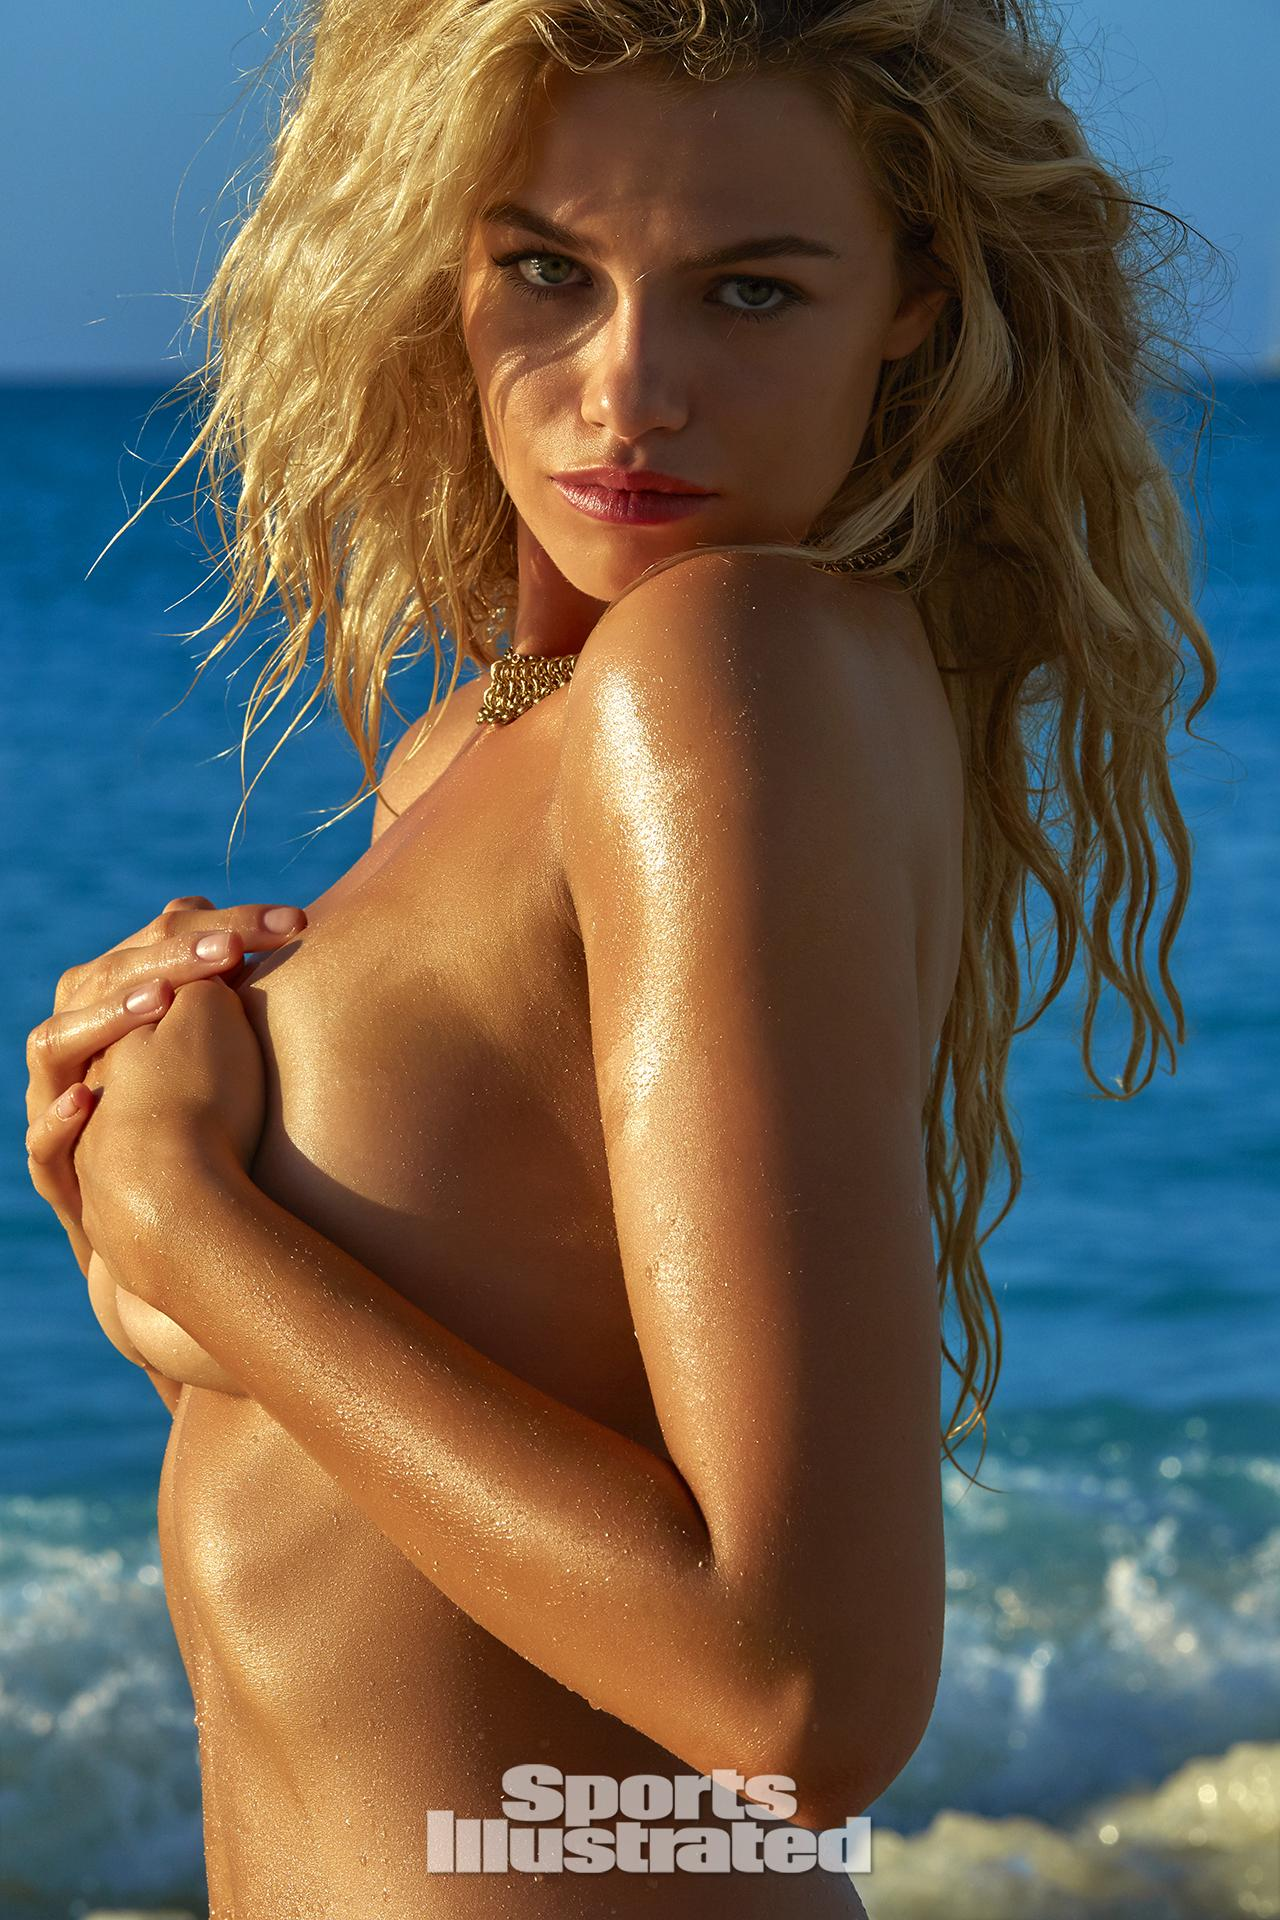 Hailey Clauson was photographed by James Macari in Turks & Caicos.